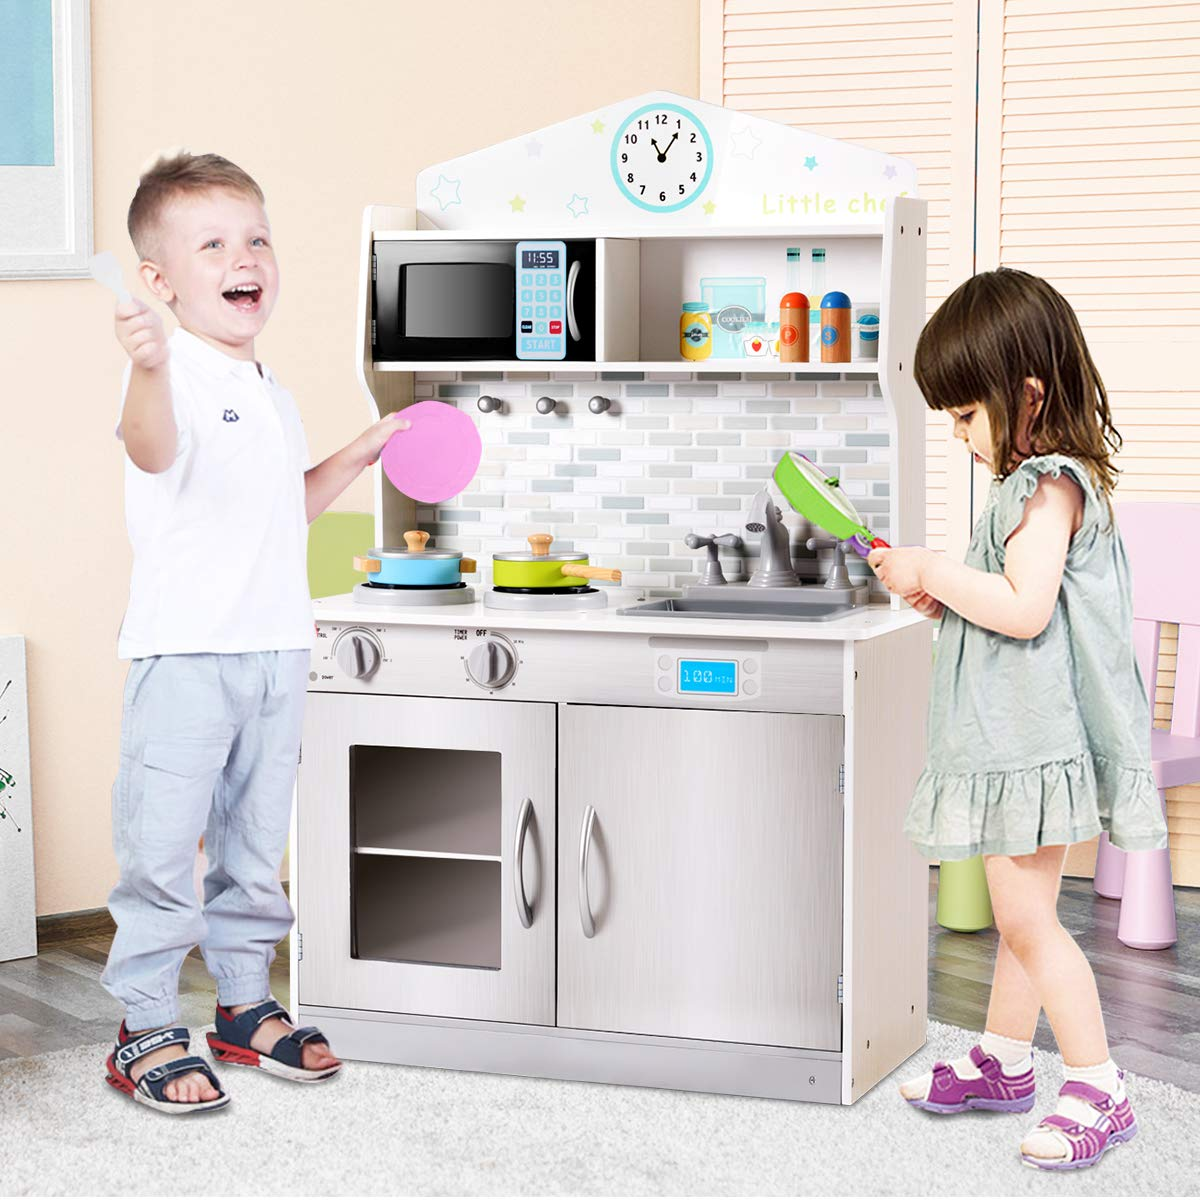 Costzon Kids Kitchen Playset, Wooden Cookware Pretend Cooking Food Set Toddler Gift Toy (Silver) by Costzon (Image #3)